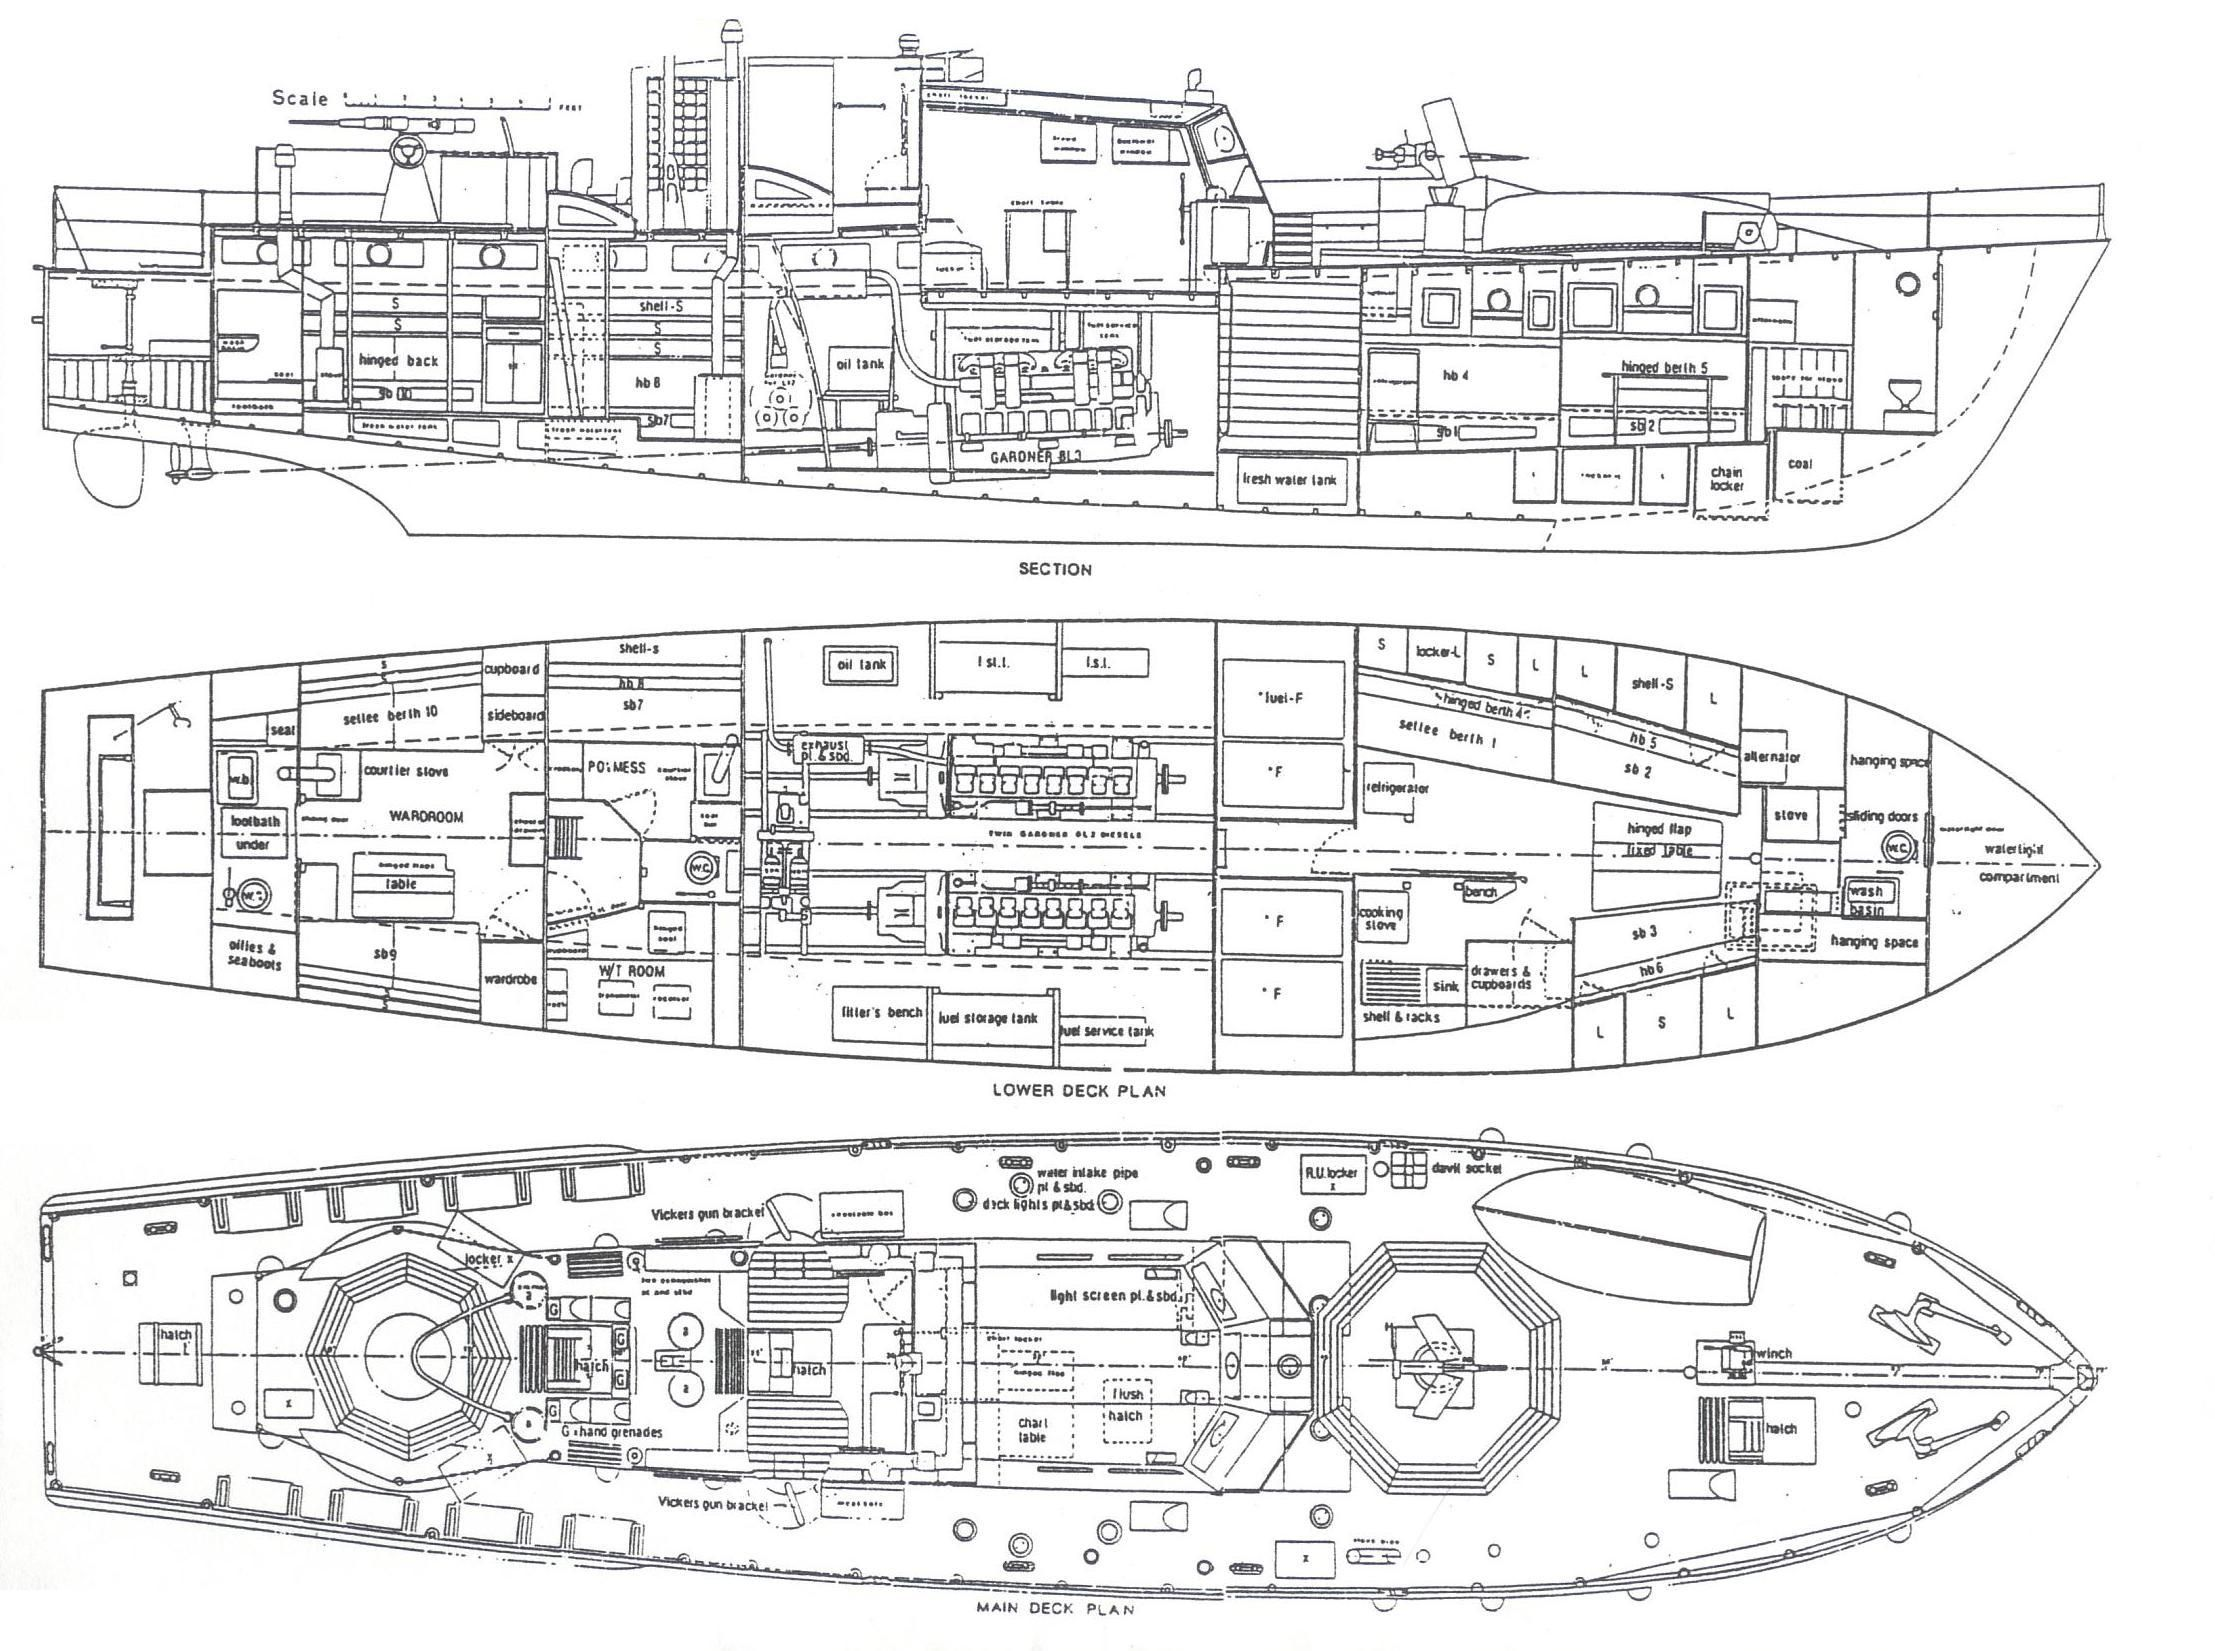 War Ship Deck Plans